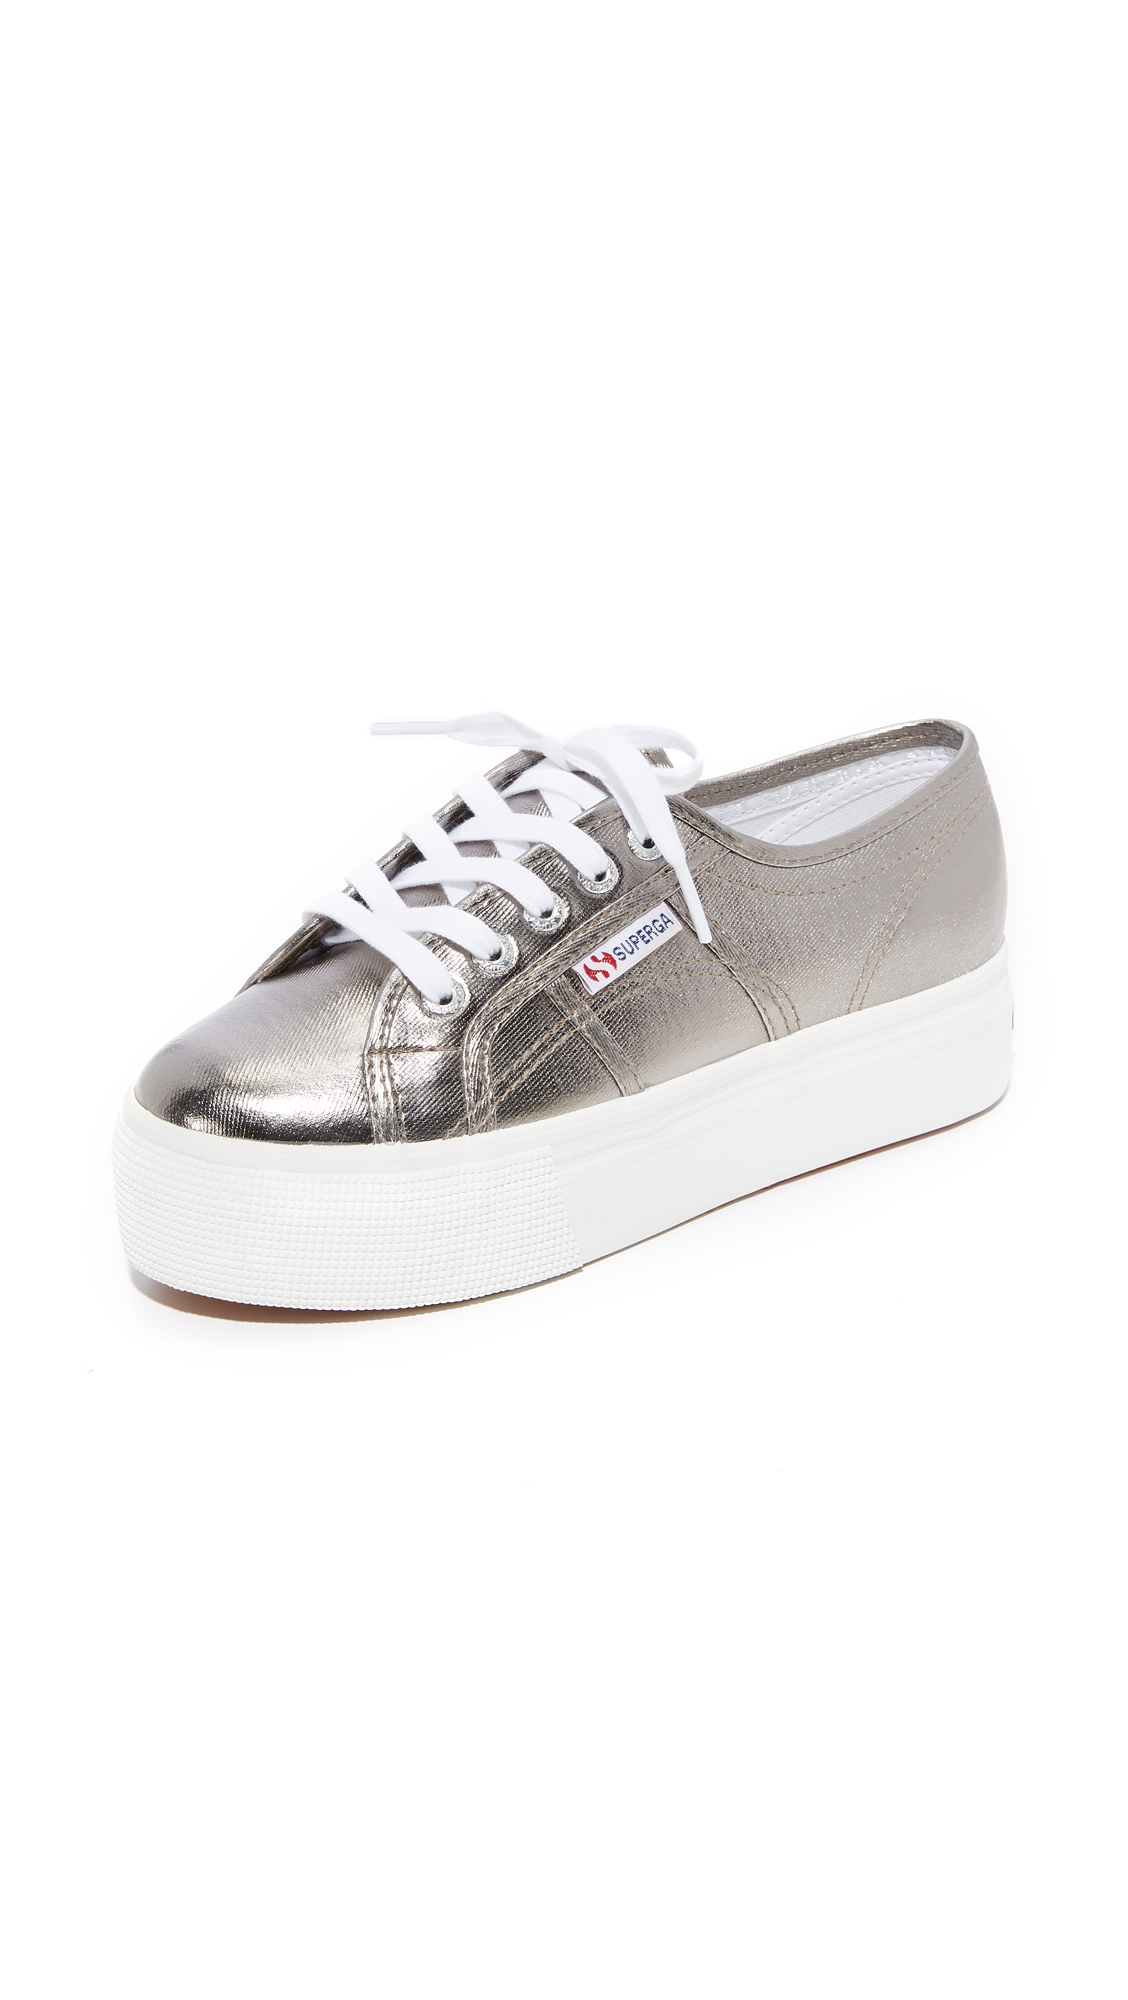 Superga 2750 Cotu Metallic Platform Sneakers - Grey